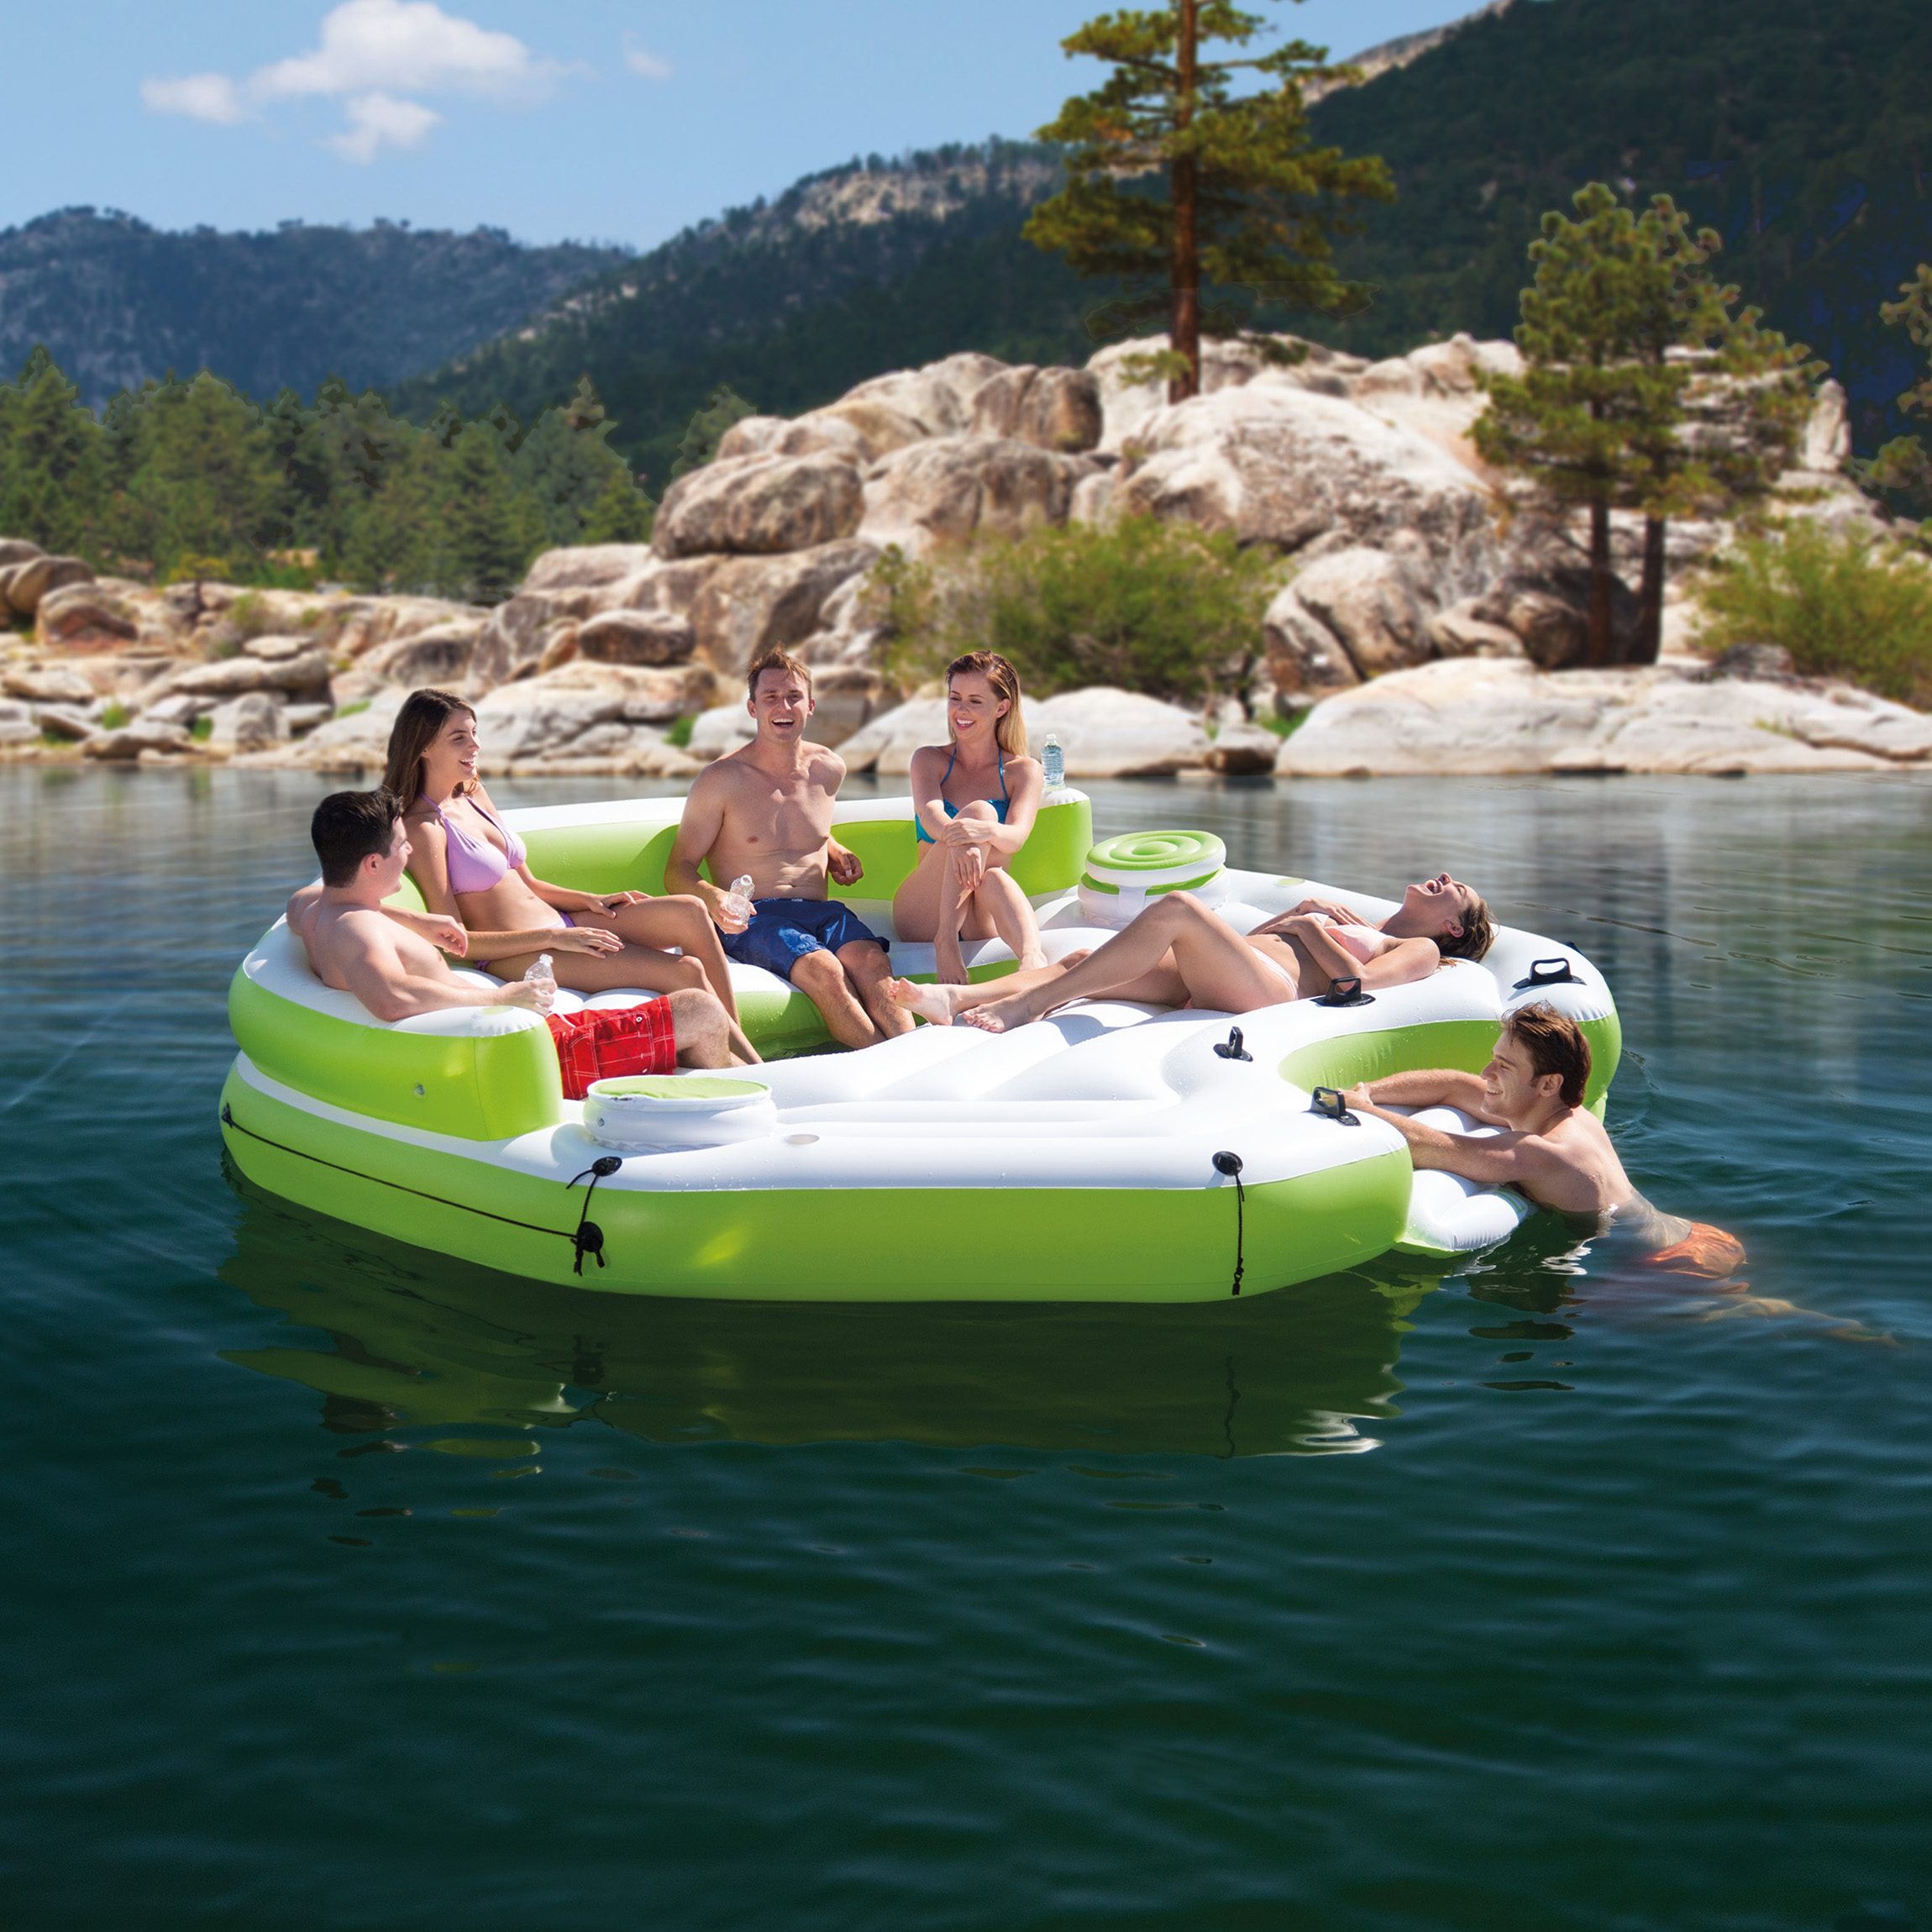 Intex Inflatable Key Largo Party Island Float W Coolers Cupholders 2 Pack